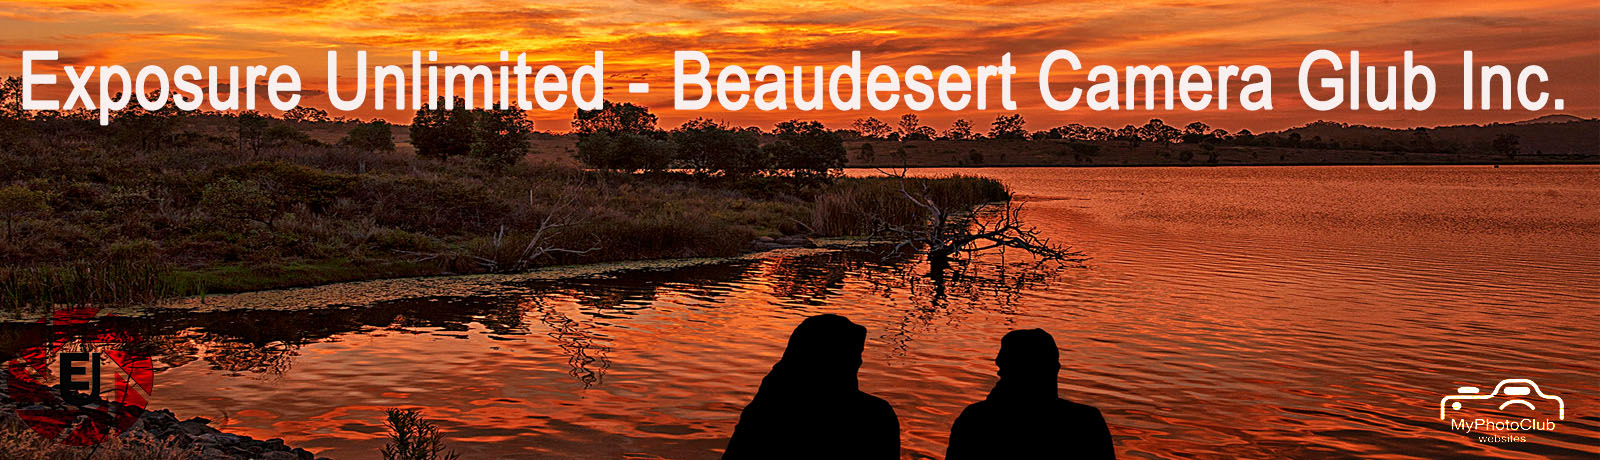 Exposure Unlimited ~ Beaudesert Camera Club Incorporated